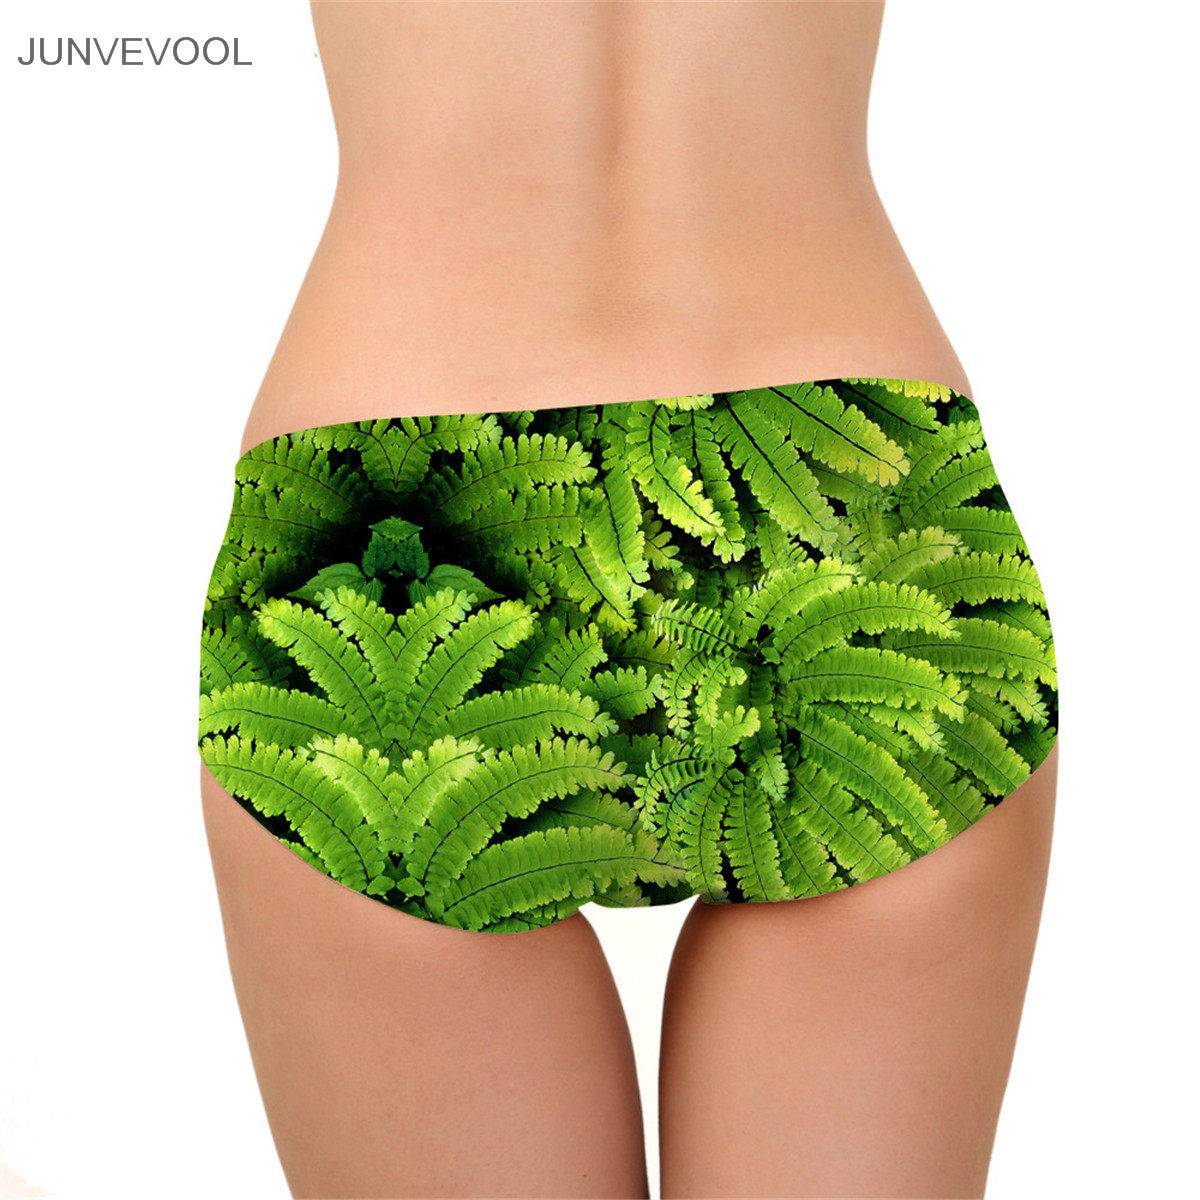 Crotchless Ultra-thin Comfort Underwear Eyes on The Leaves Print Seamless Panties for Women Sexy Briefs Women Sexy Underpants